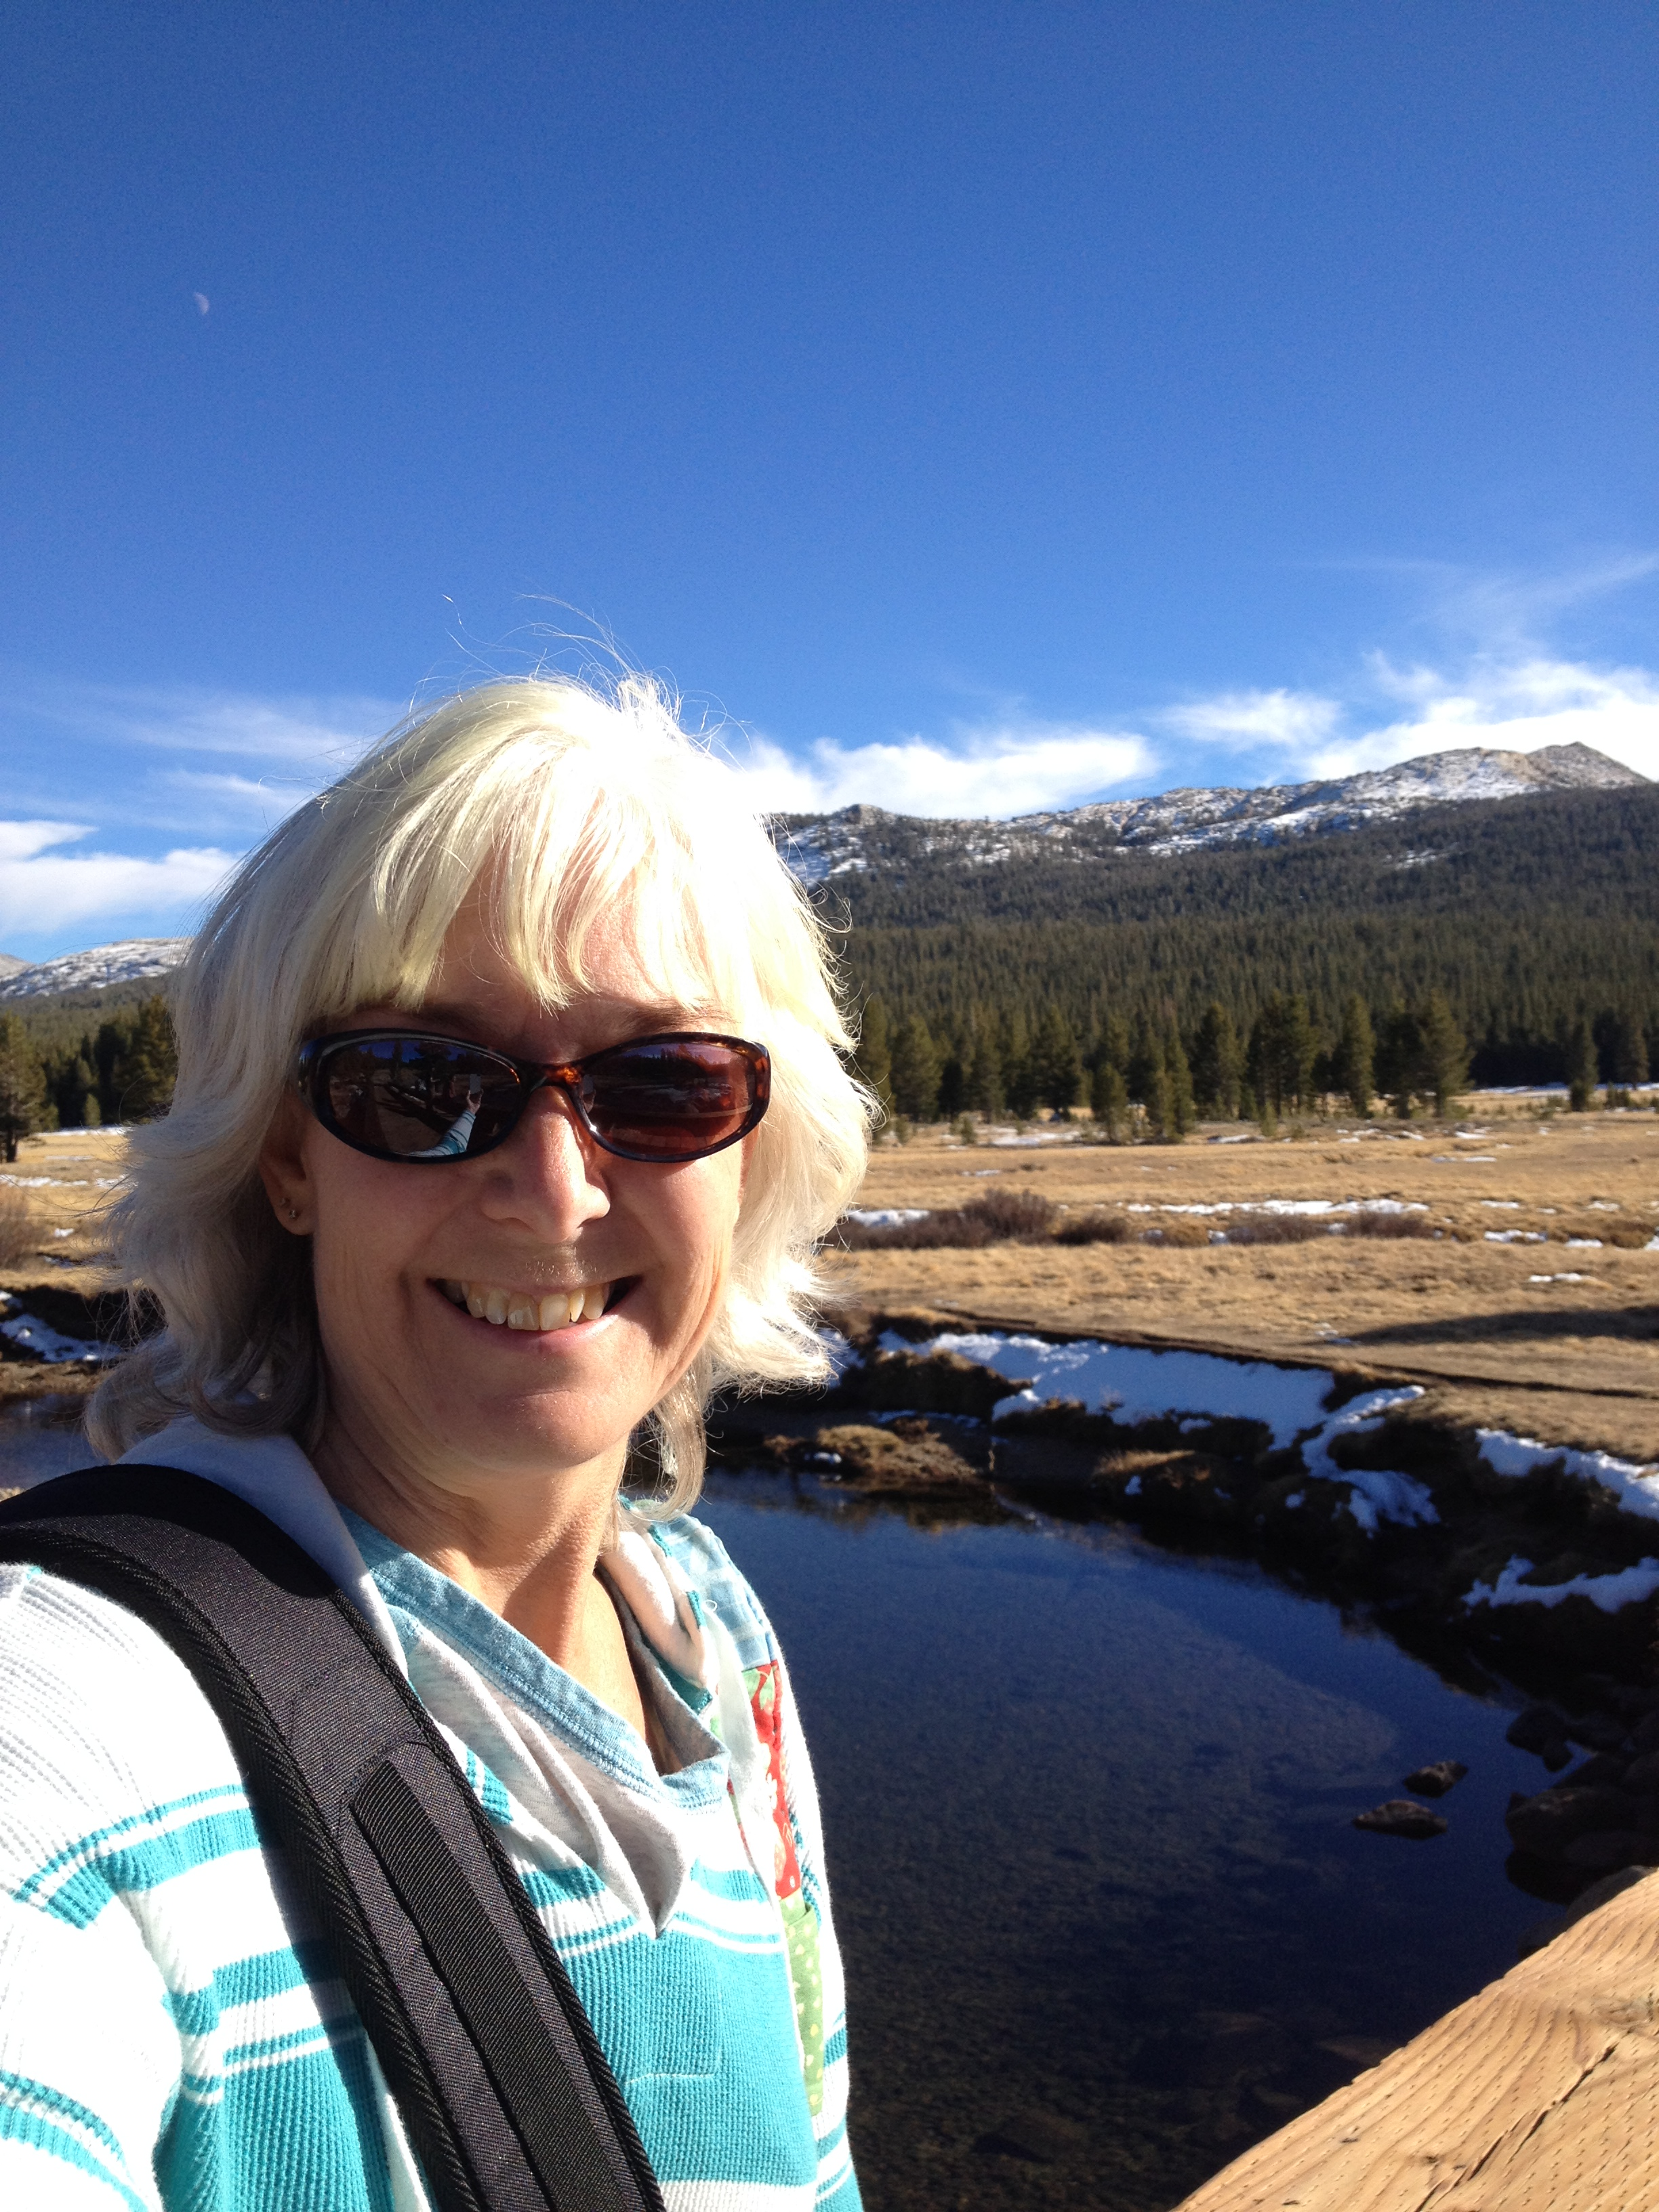 iPhone self portrait at Tuolumne Meadows